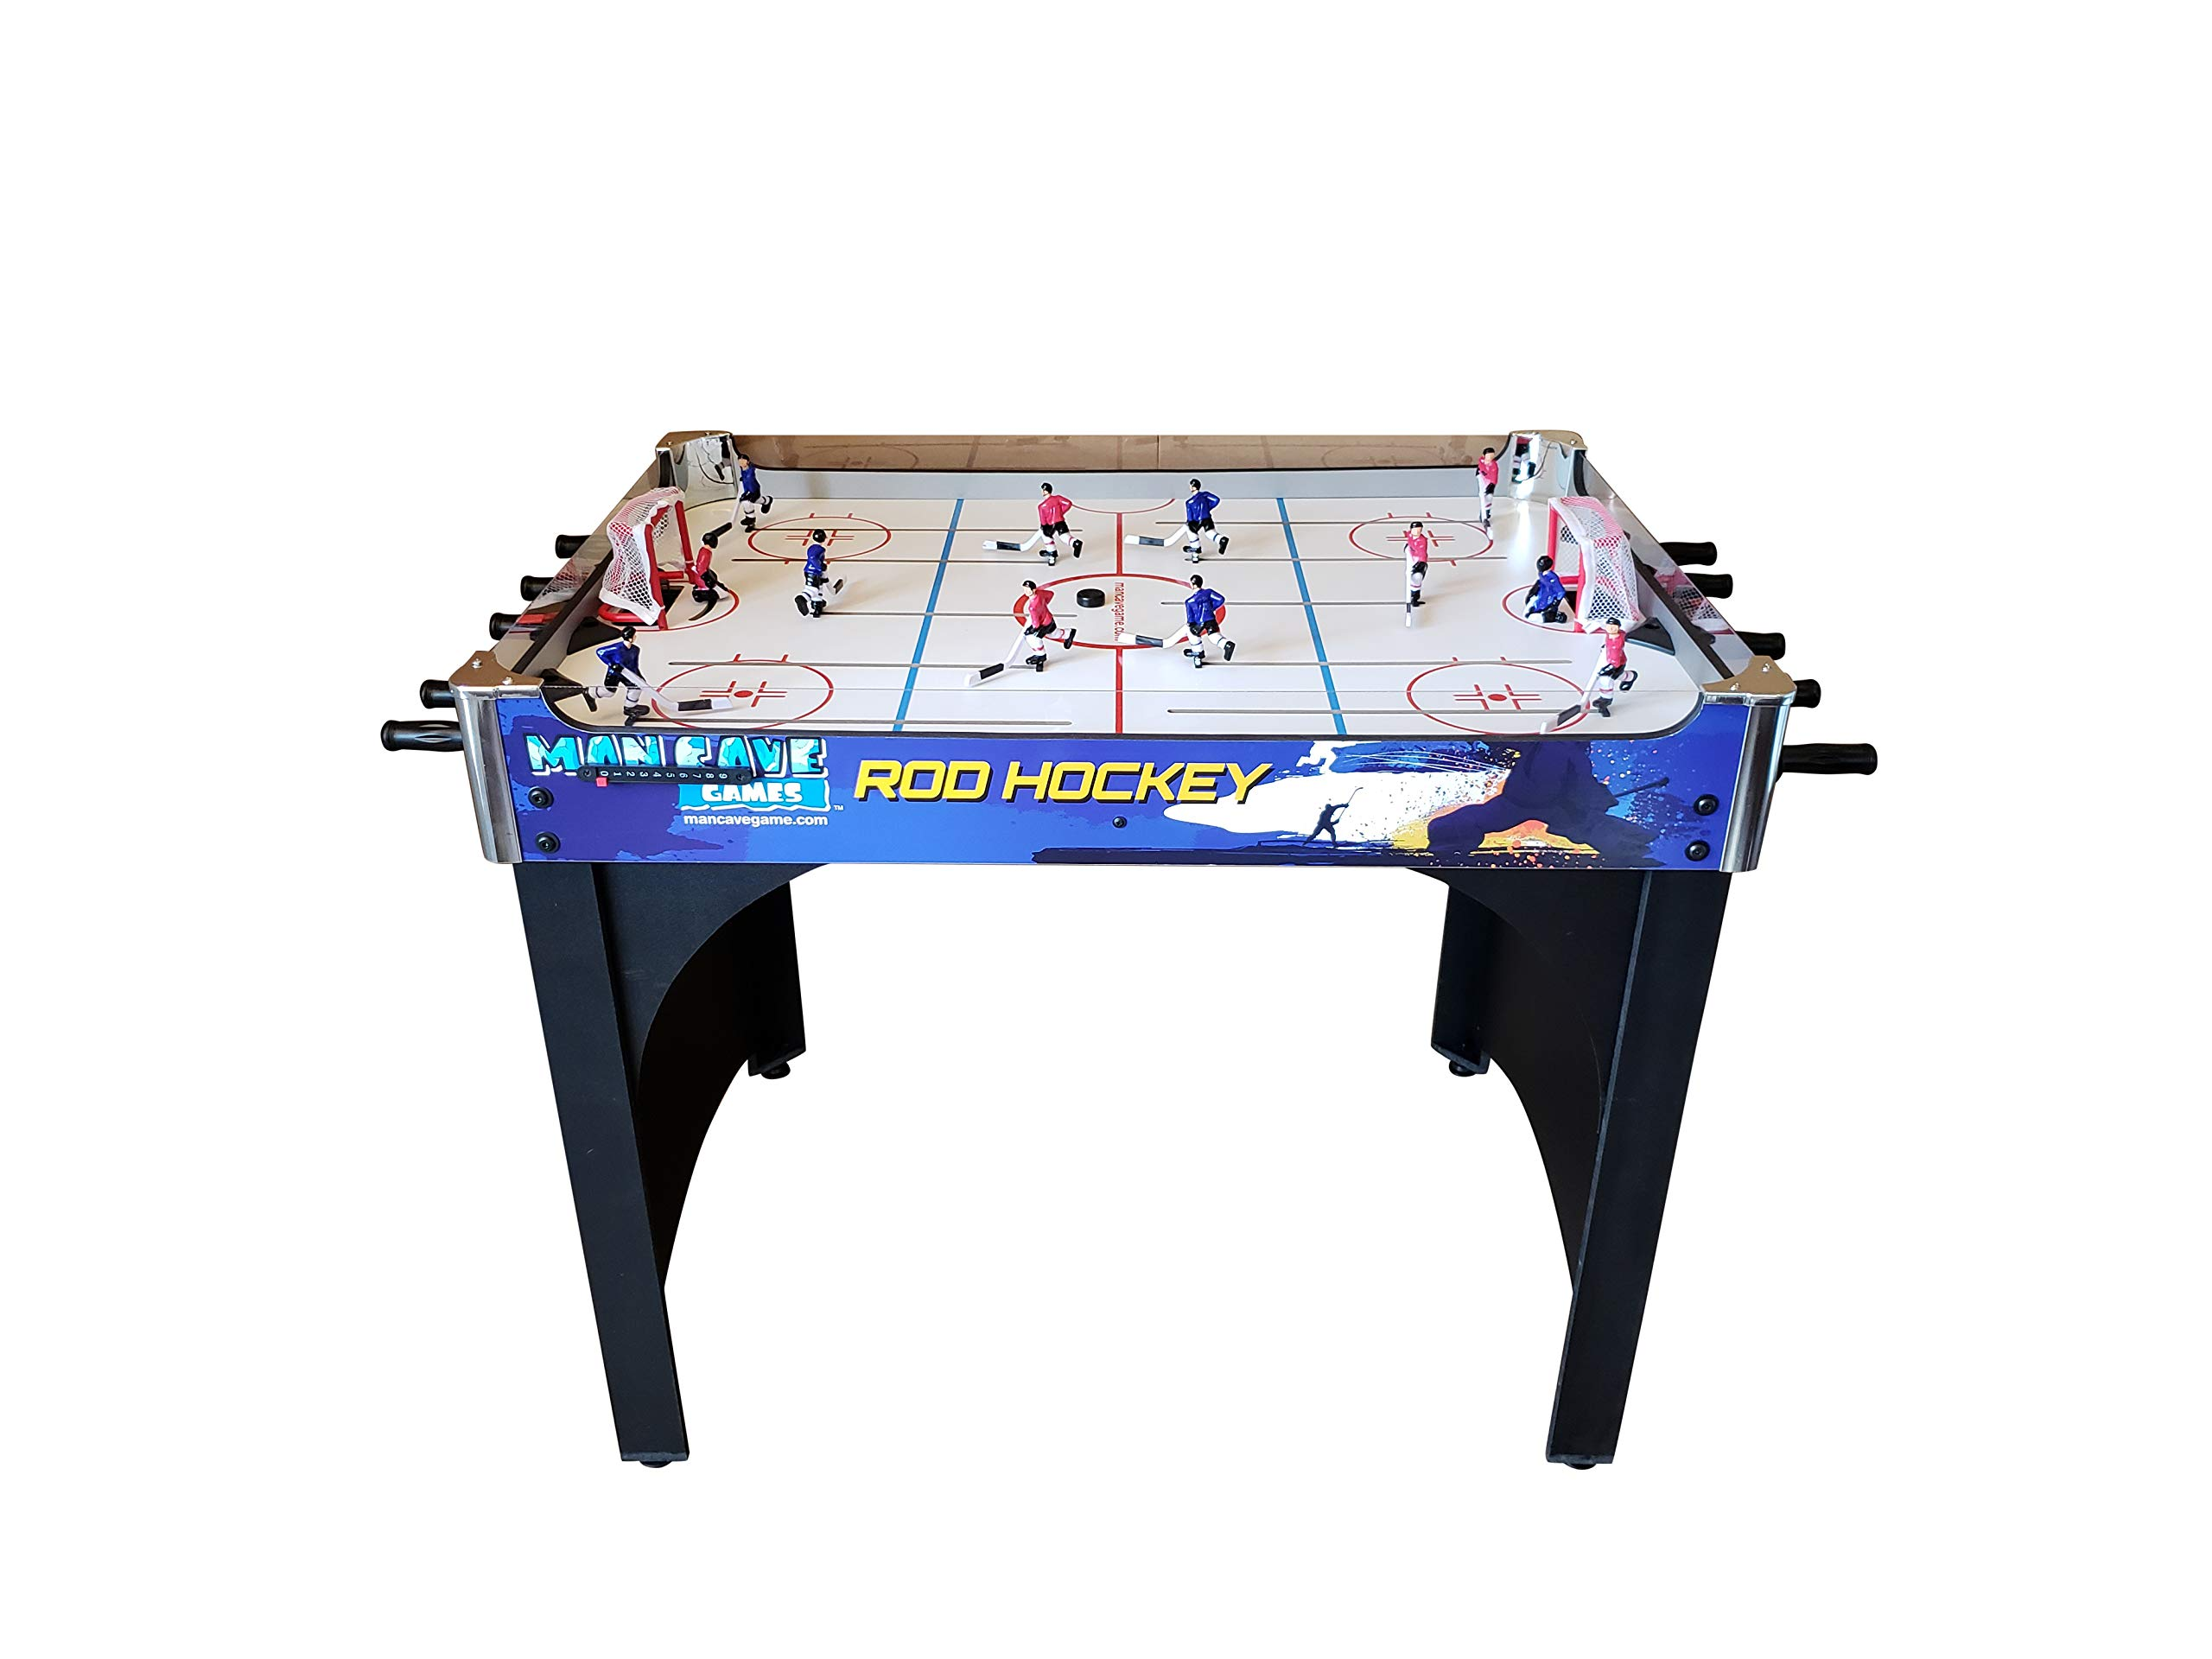 ManCave Games 40'' Rod Hockey Game. Head-to-Head Table Hockey with Manual Scoring. Great Size, Durability & Easier for Kids to Play Than Dome Hockey. by ManCave Games